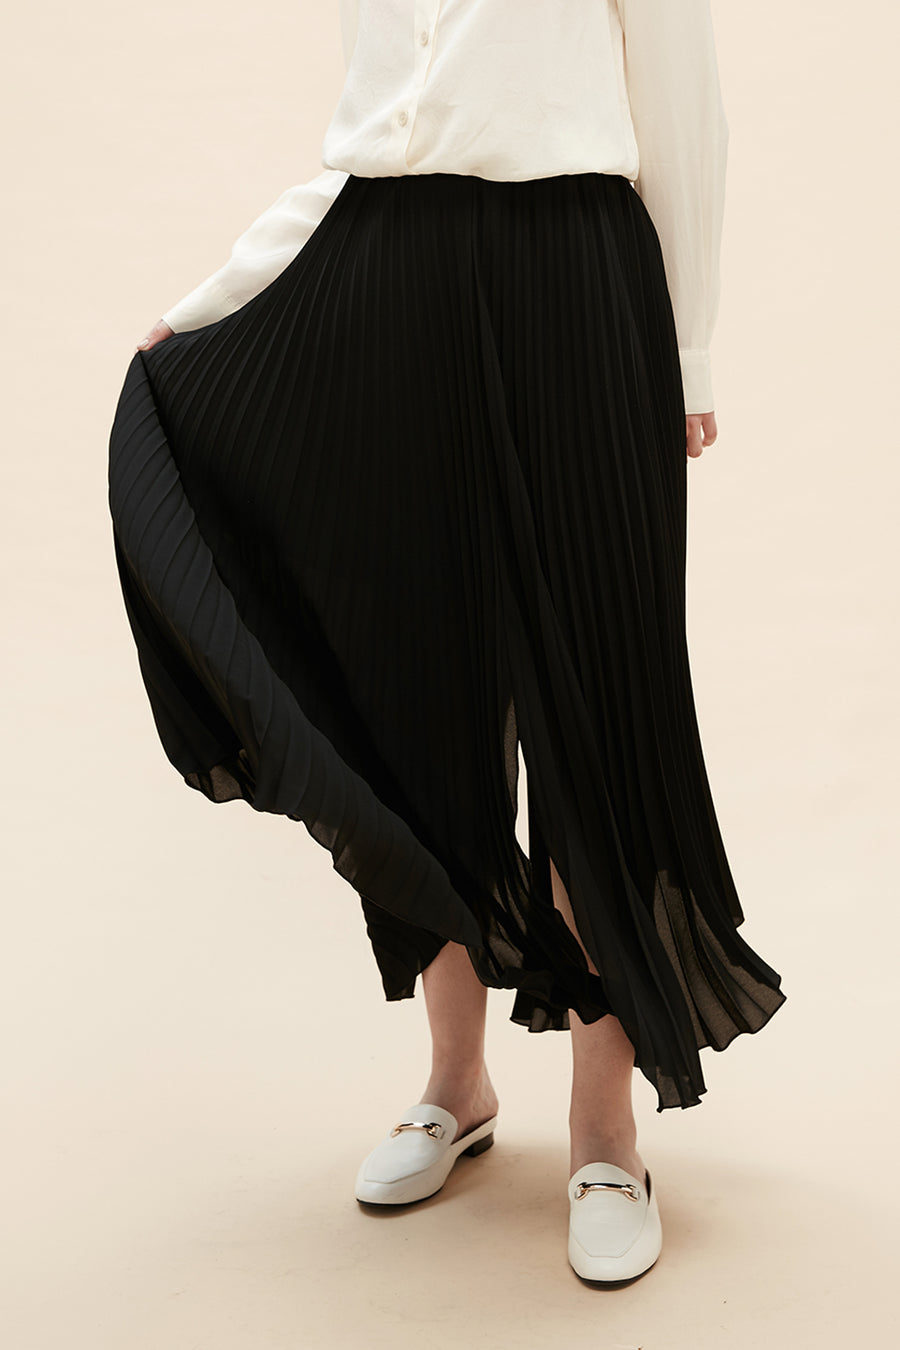 Allison - Light Pleated Skirt - Zelle Studio